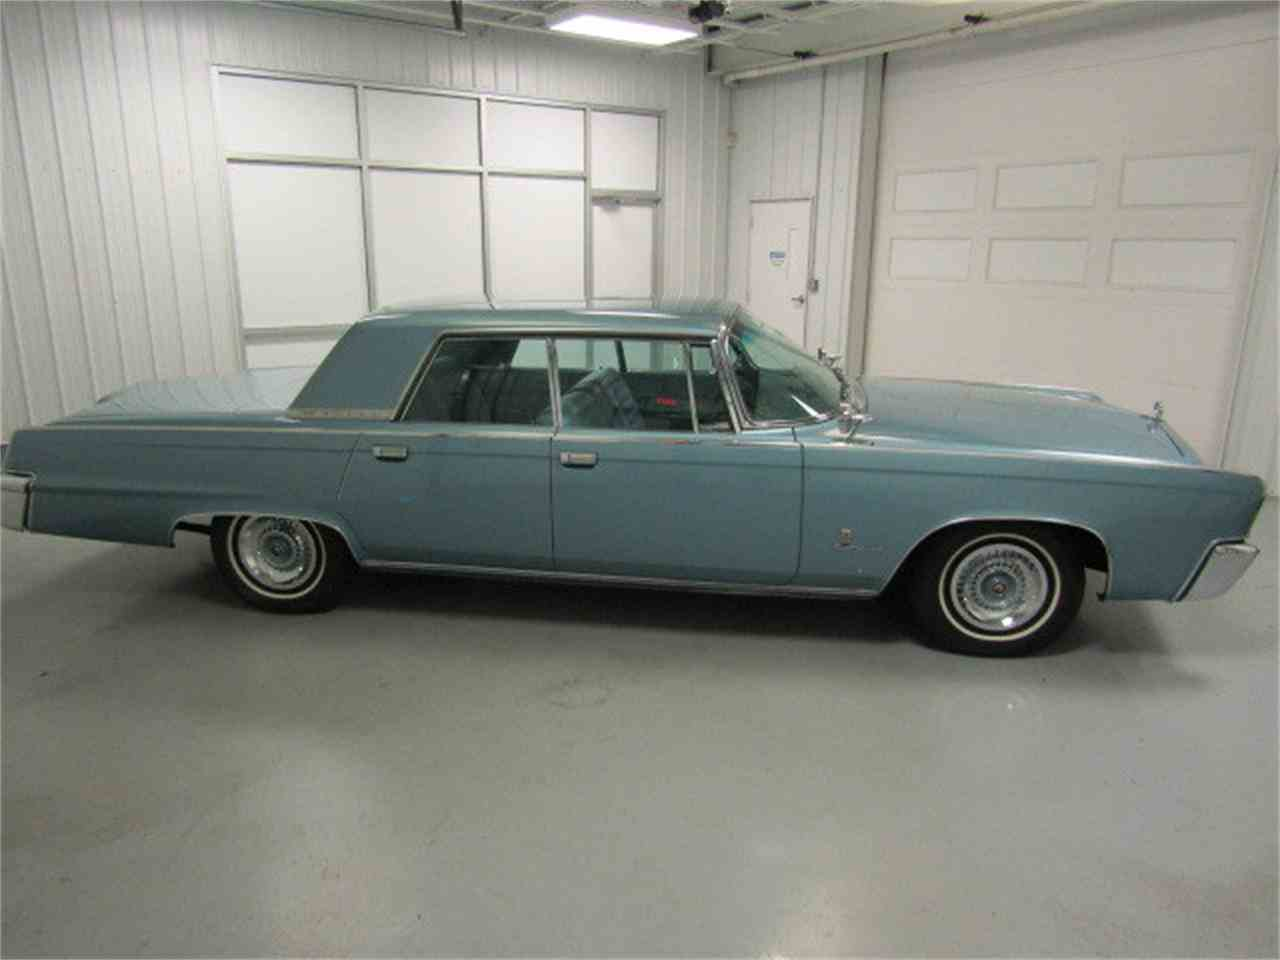 Large Picture of '64 Chrysler Imperial Offered by Duncan Imports & Classic Cars - JLDR